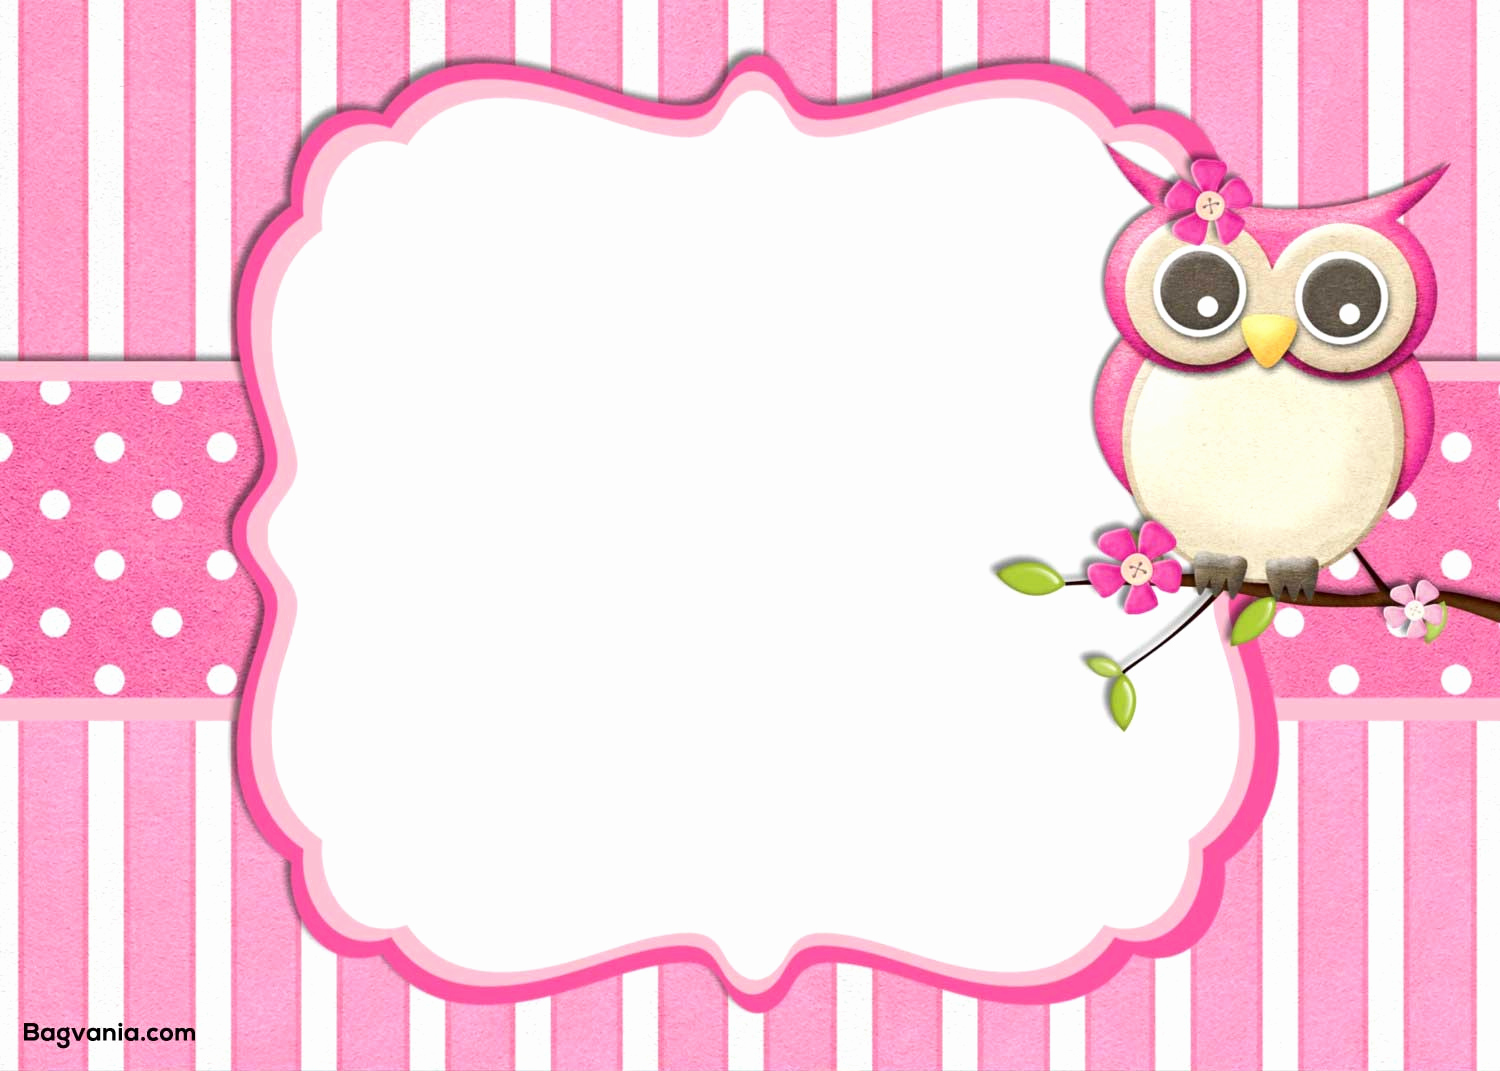 Free Owl Invitation Template Awesome Birthday Invitation Template – Free Printable – Bagvania